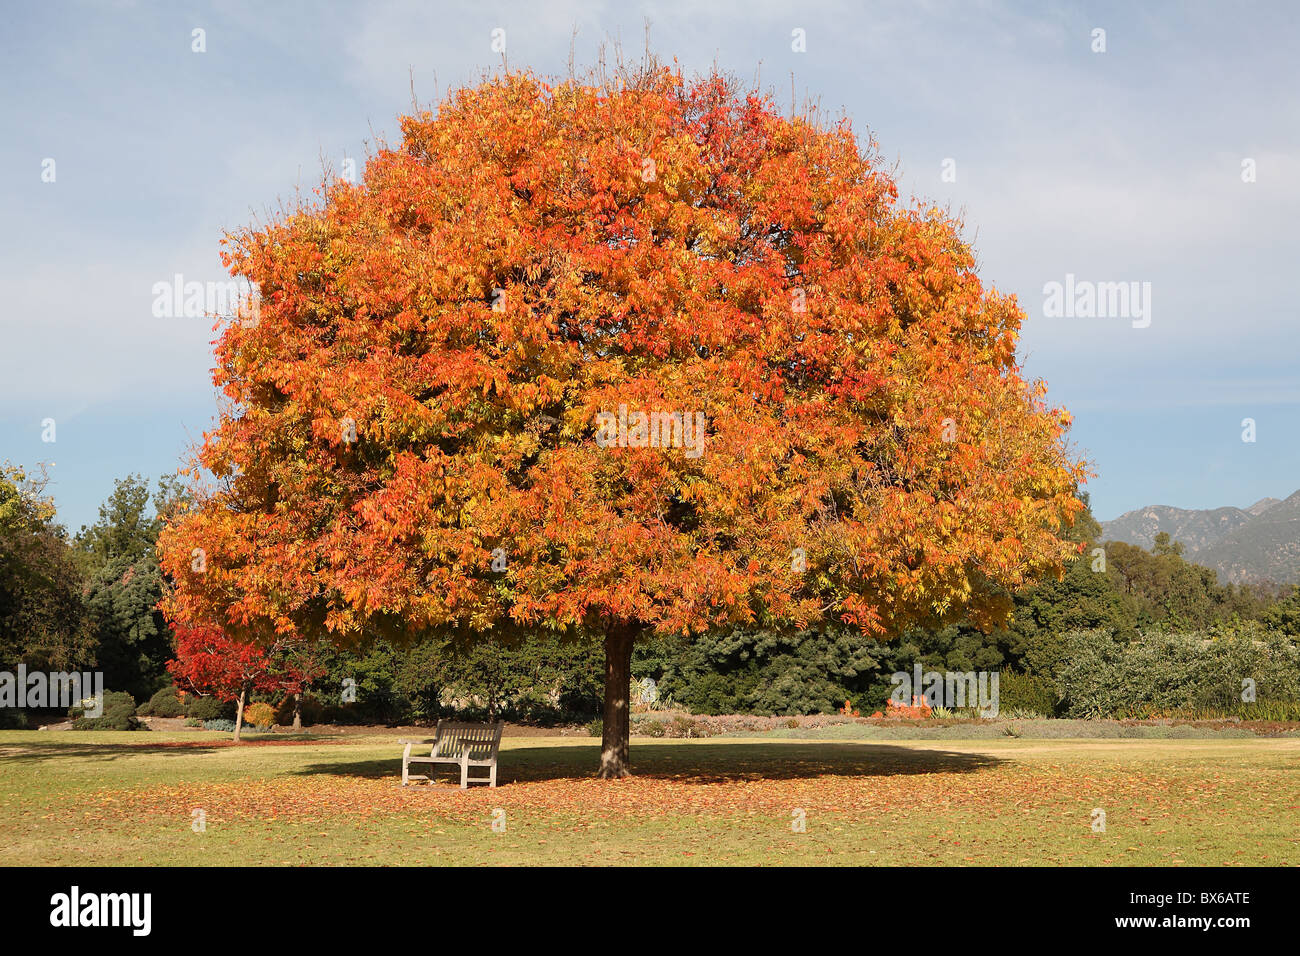 Orange and yellow fall or autumn foliage on perfect shaped tree with bench underneath - Stock Image